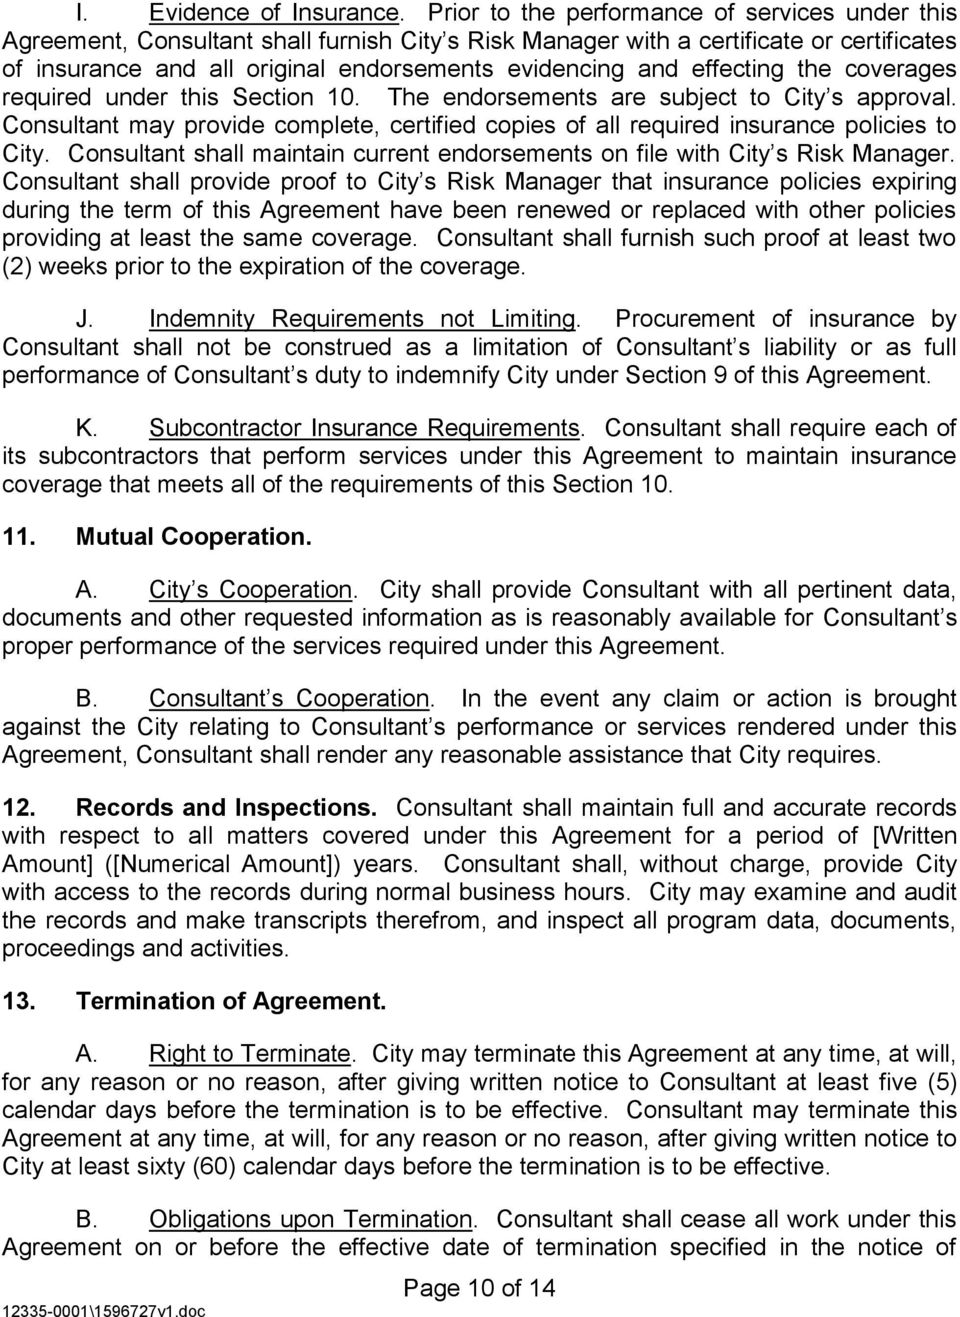 effecting the coverages required under this Section 10. The endorsements are subject to City s approval. Consultant may provide complete, certified copies of all required insurance policies to City.